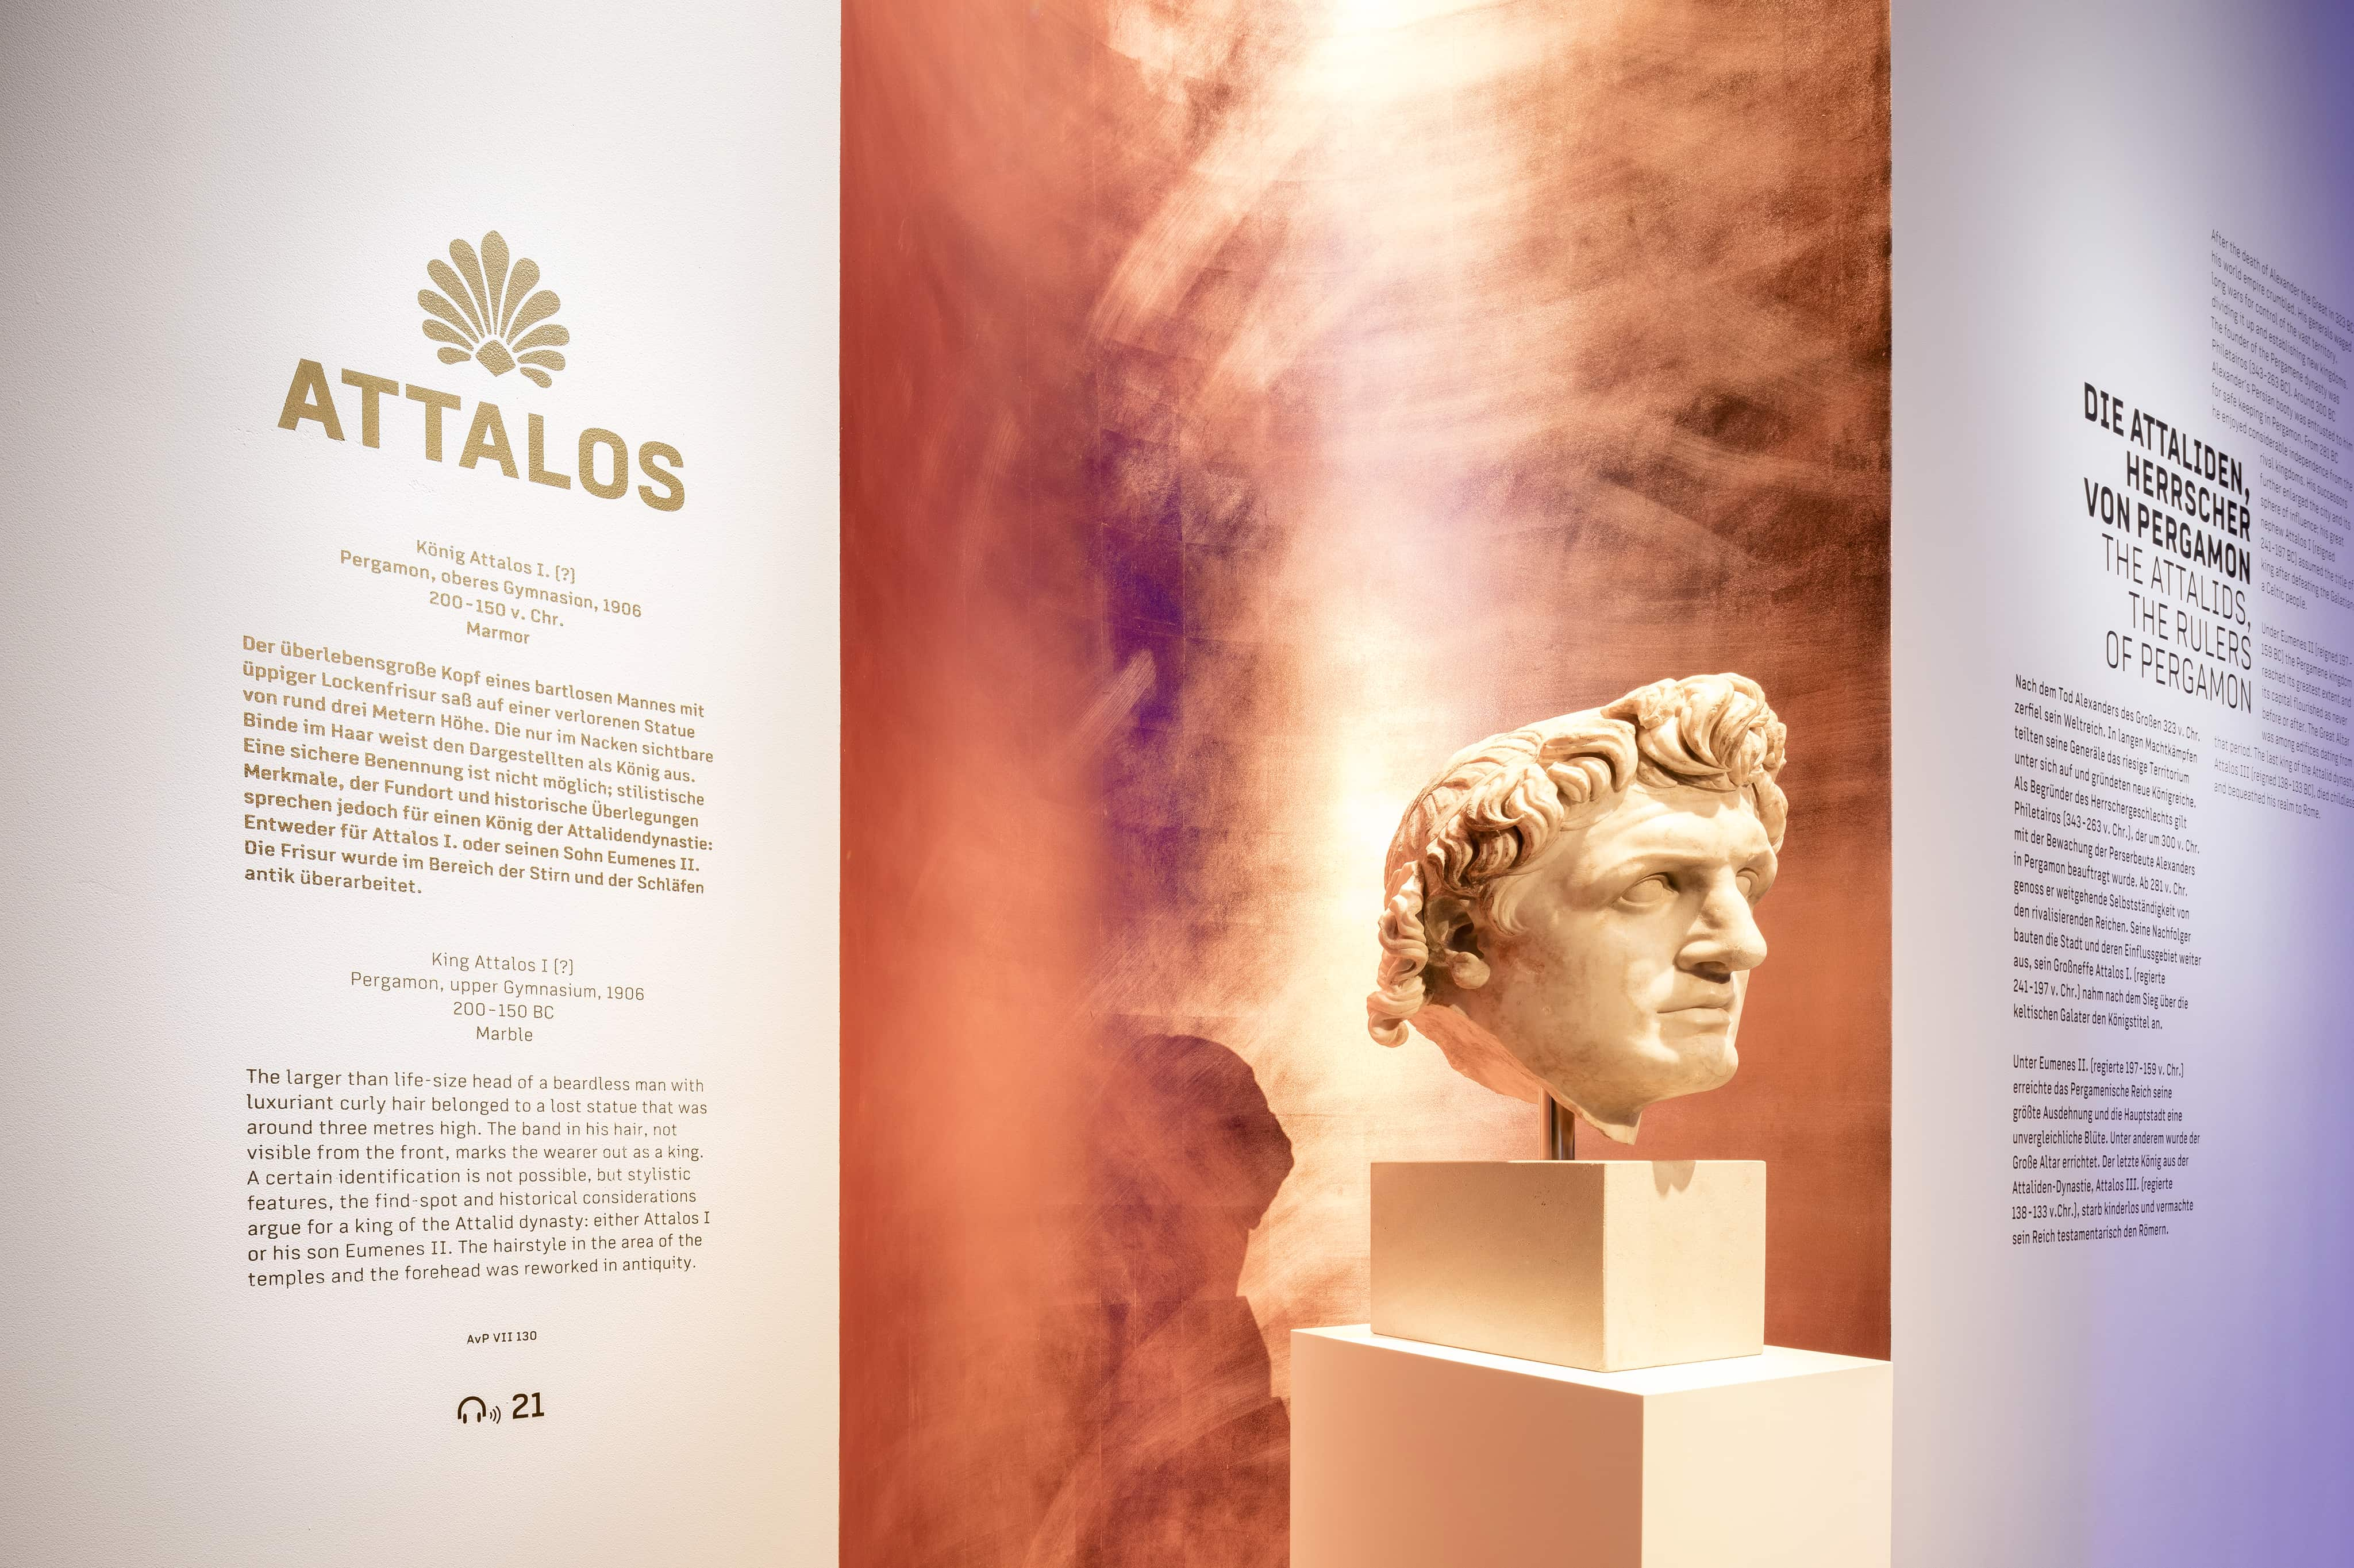 Museumsinsel Berlin Pergamon Ausstellung Panorama Attalos